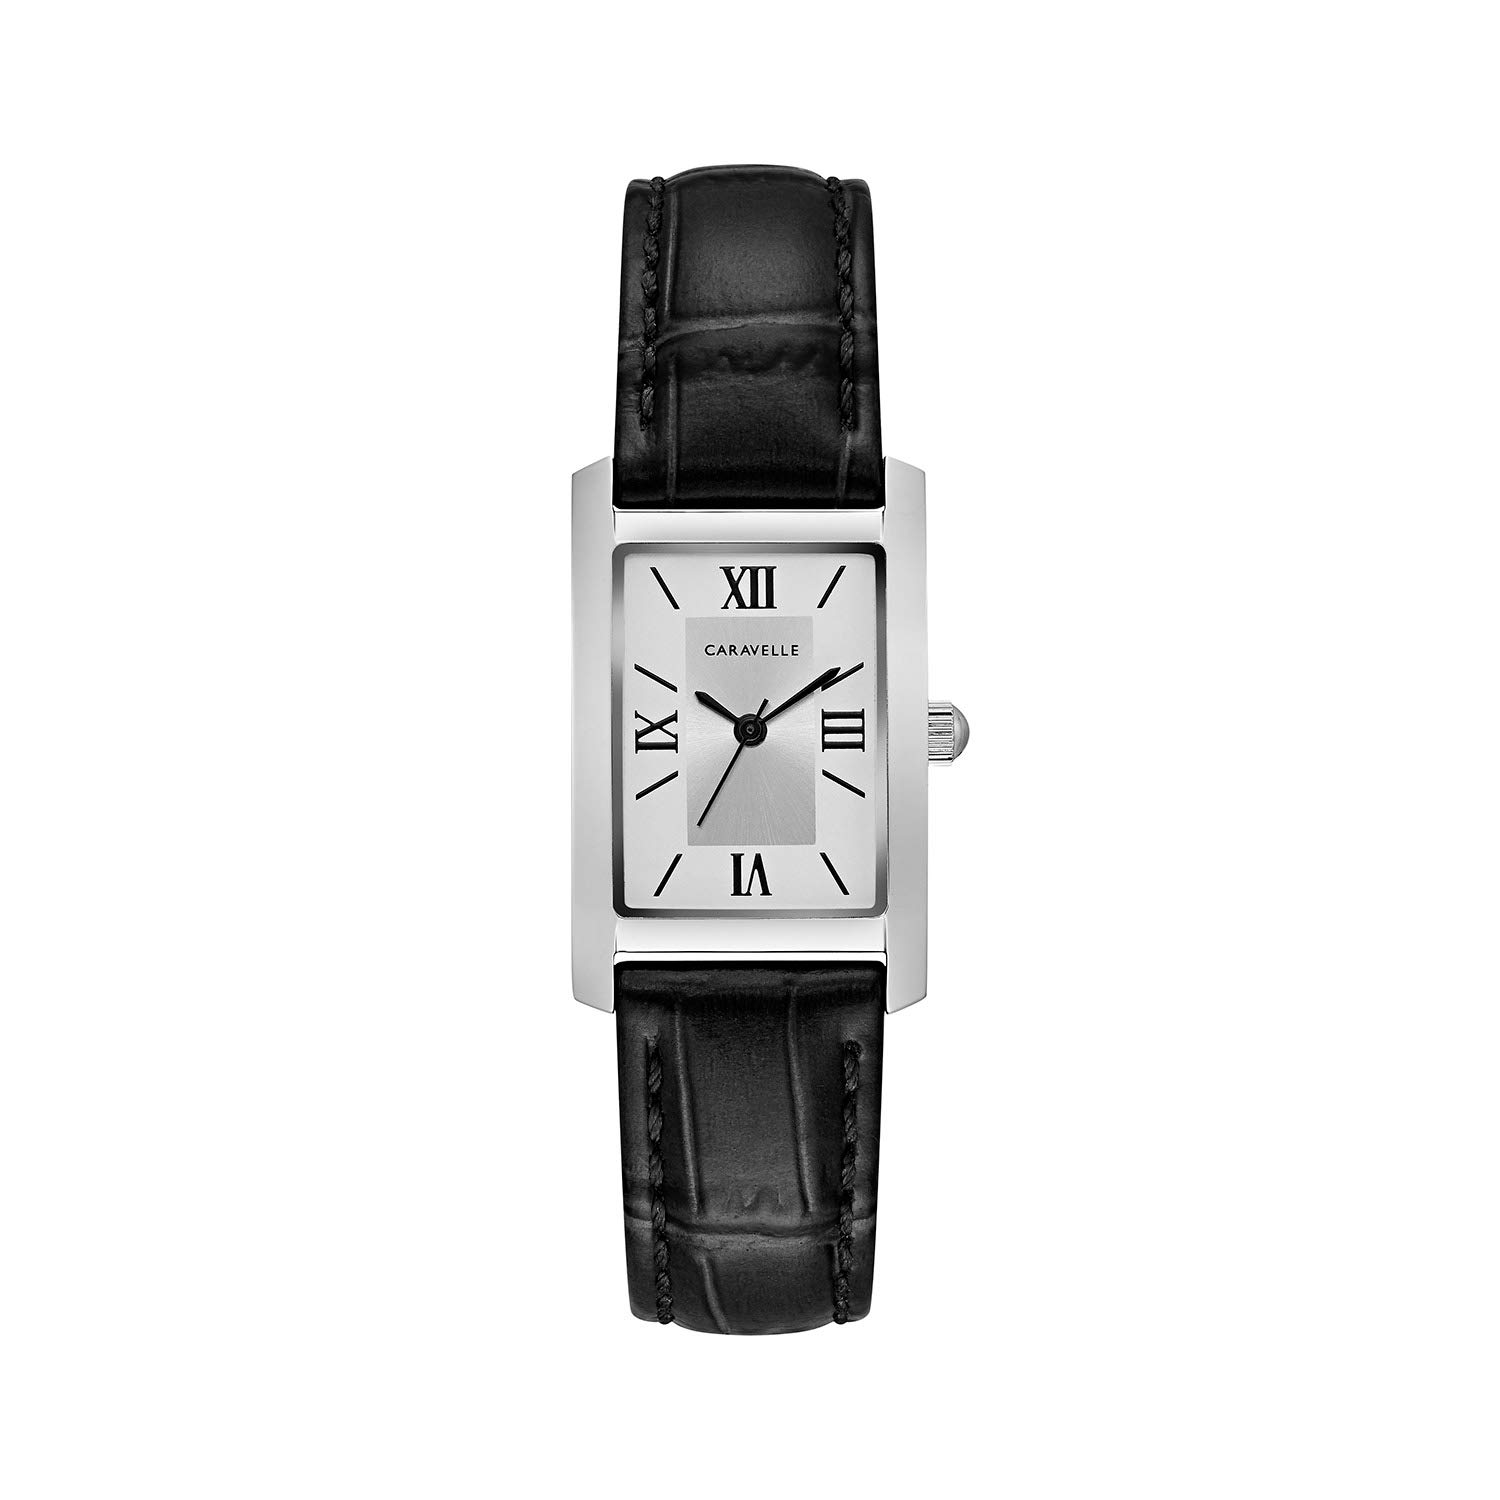 Caravelle Designed by Bulova Women s Stainless Steel Quartz Watch with Leather Calfskin Strap, Black, 16 Model 43L202